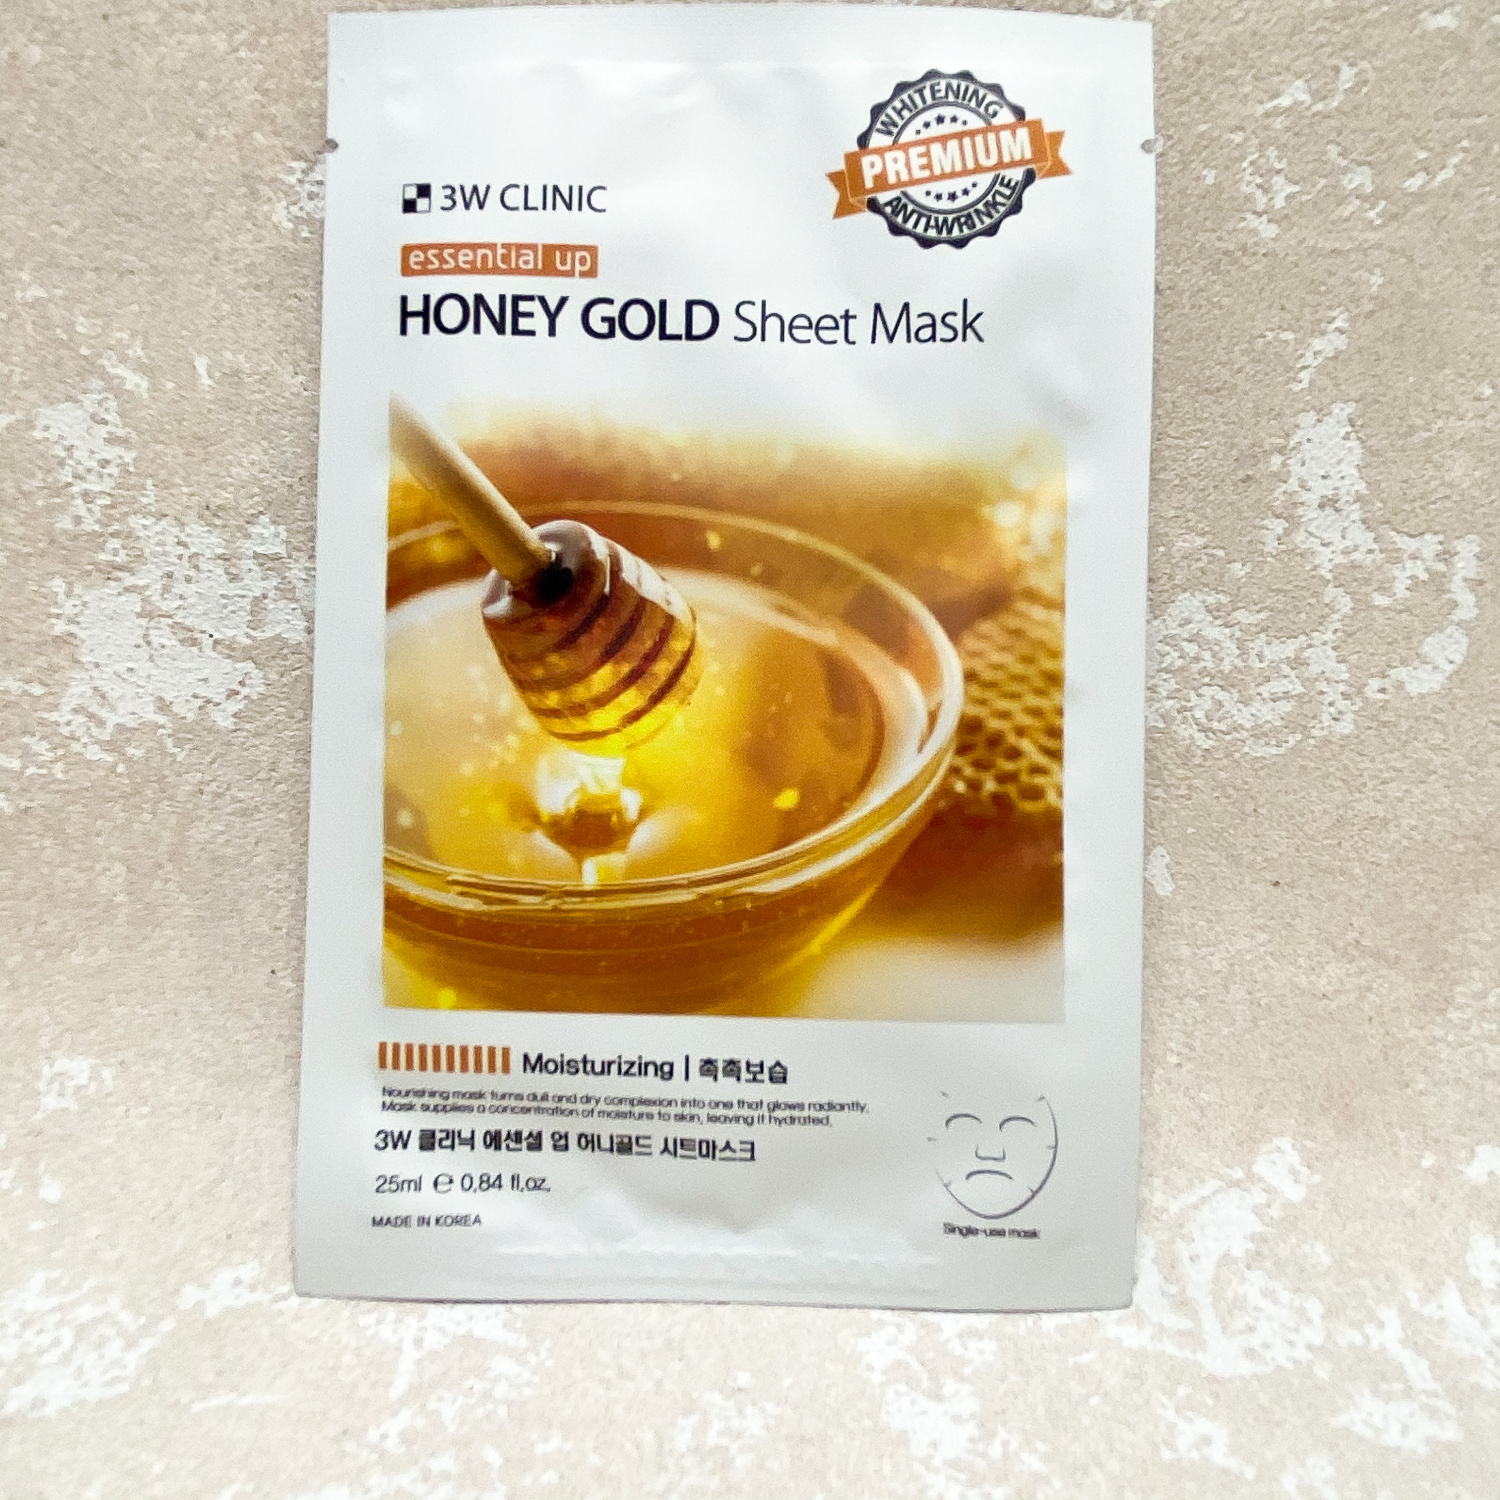 3W CLINIC Essential Up Honey Gold Sheet Mask